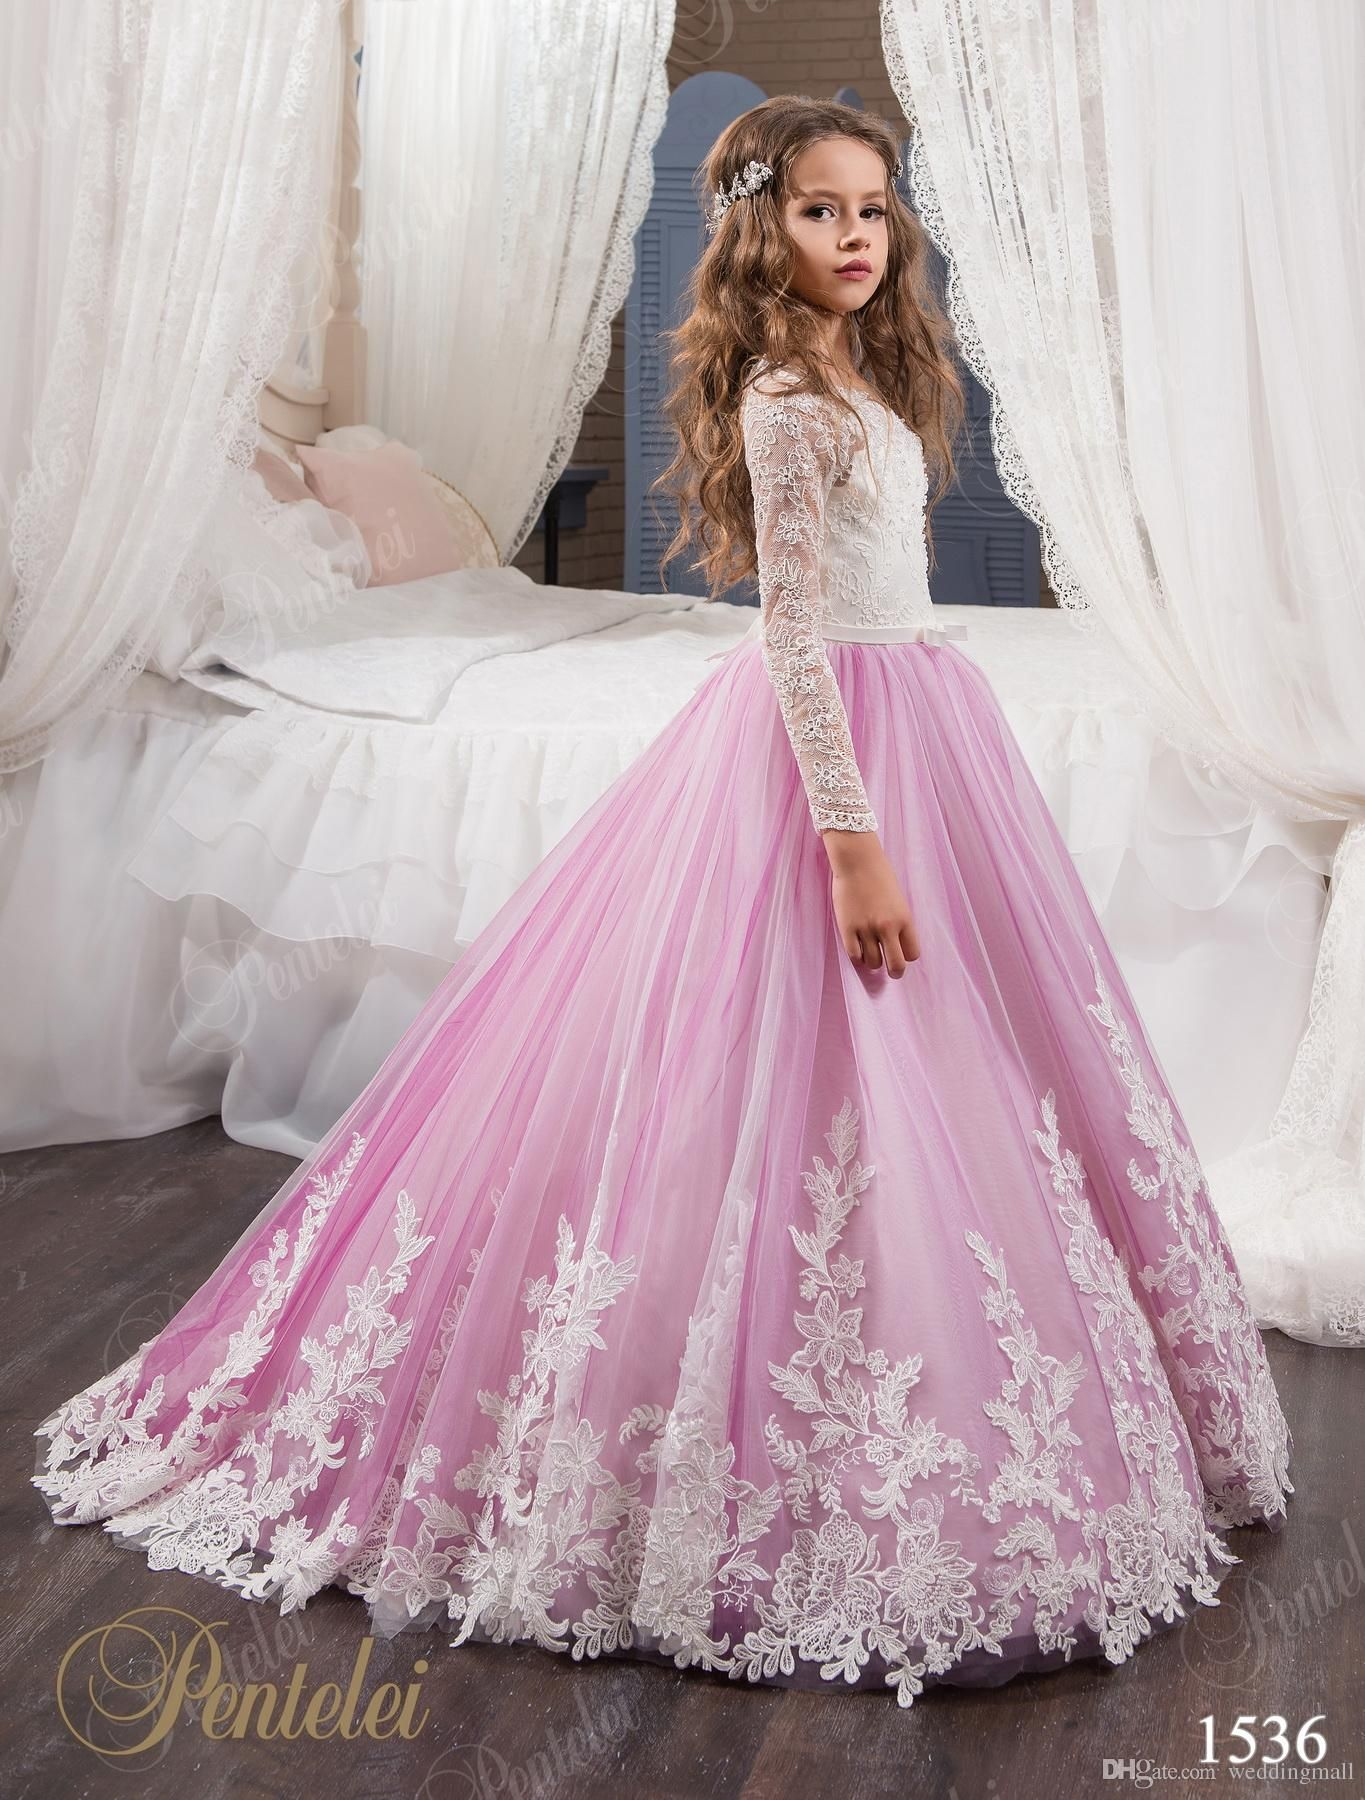 b264416fda3 Vintage Princess Floral Lace Arabic 2017 Flower Girl Dresses Long Sleeves  Tulle Child Dresses Beautiful Flower Girl Wedding Dresses F0678 Wedding  Girls ...